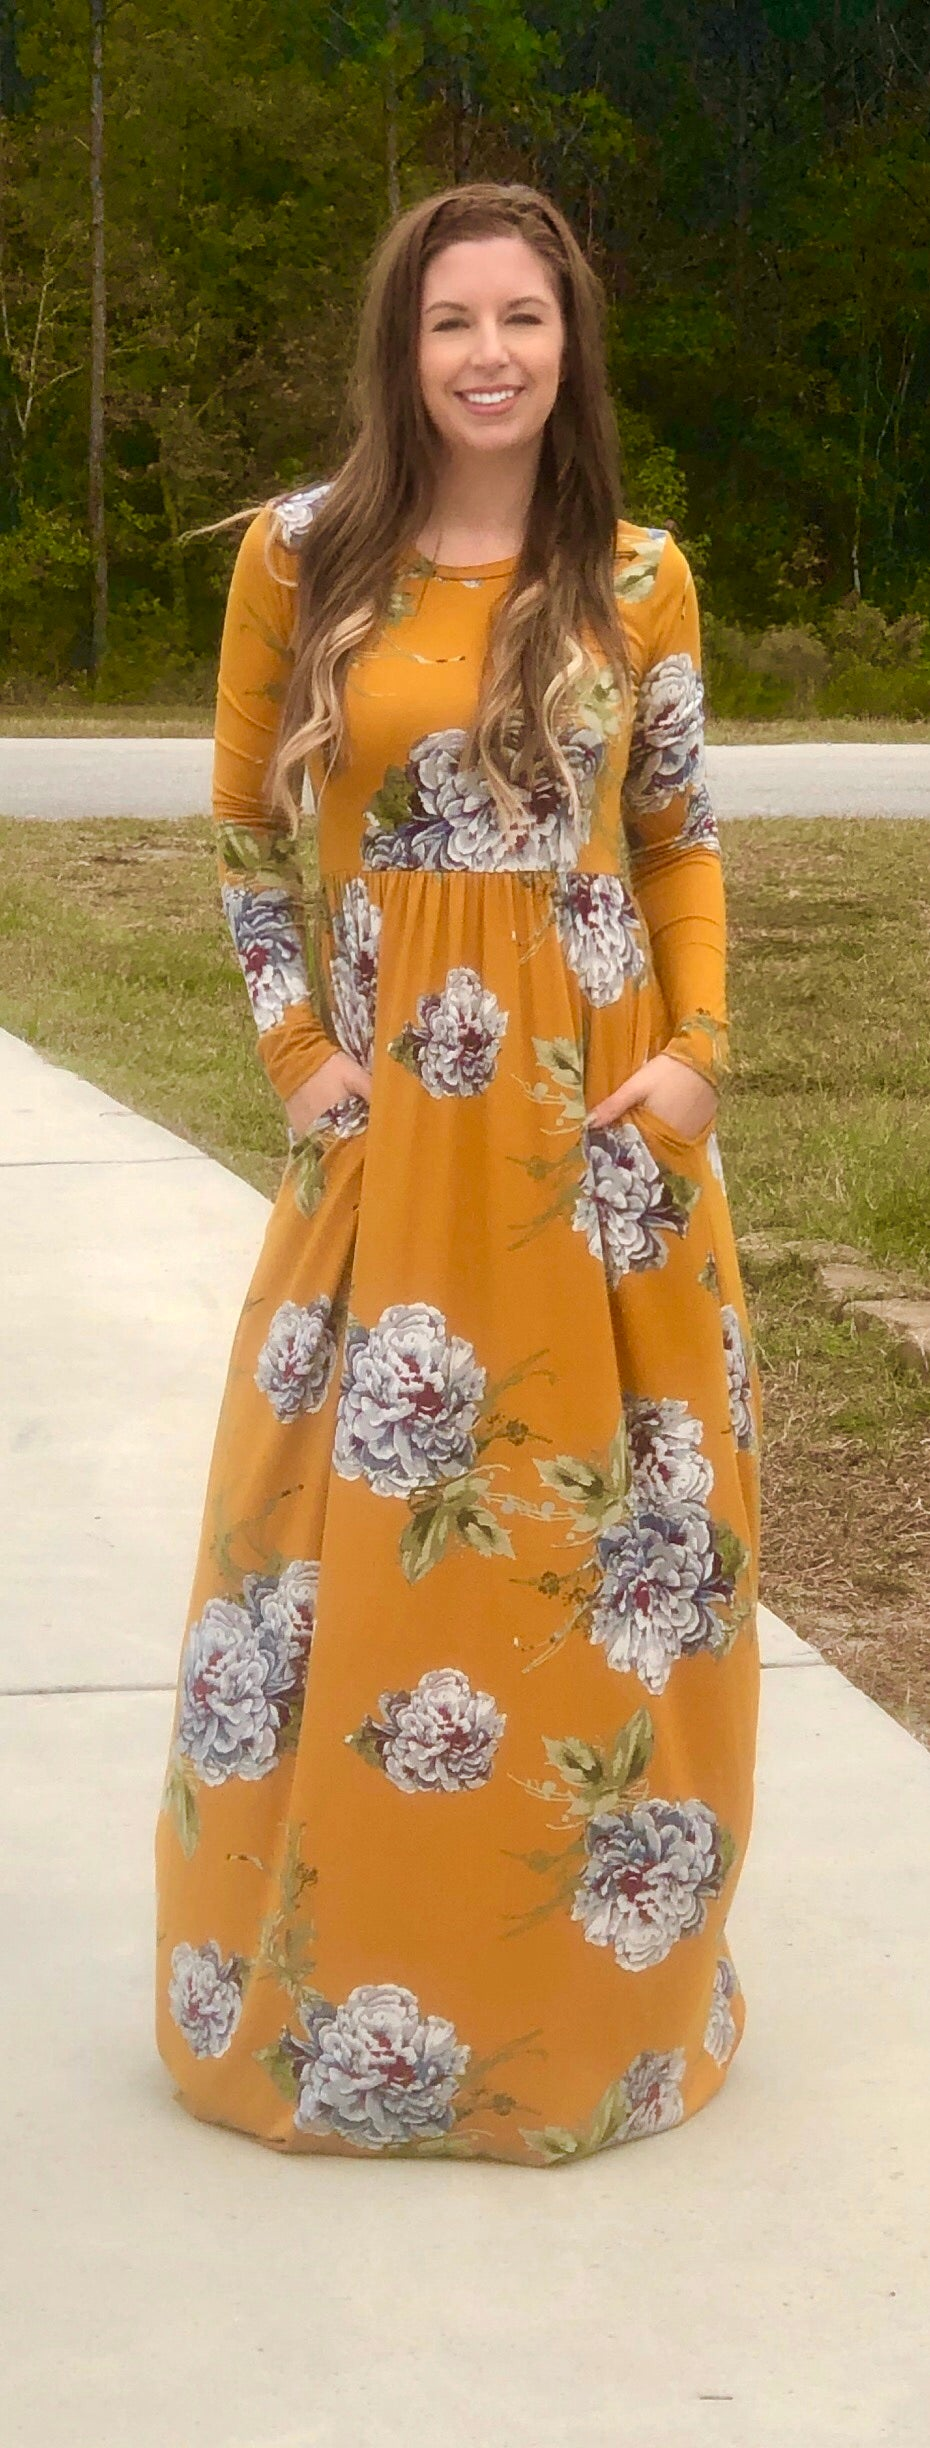 mustard and floral print long sleeve long maxi dress. soft and stretchy material. cinched at the waist with pockets